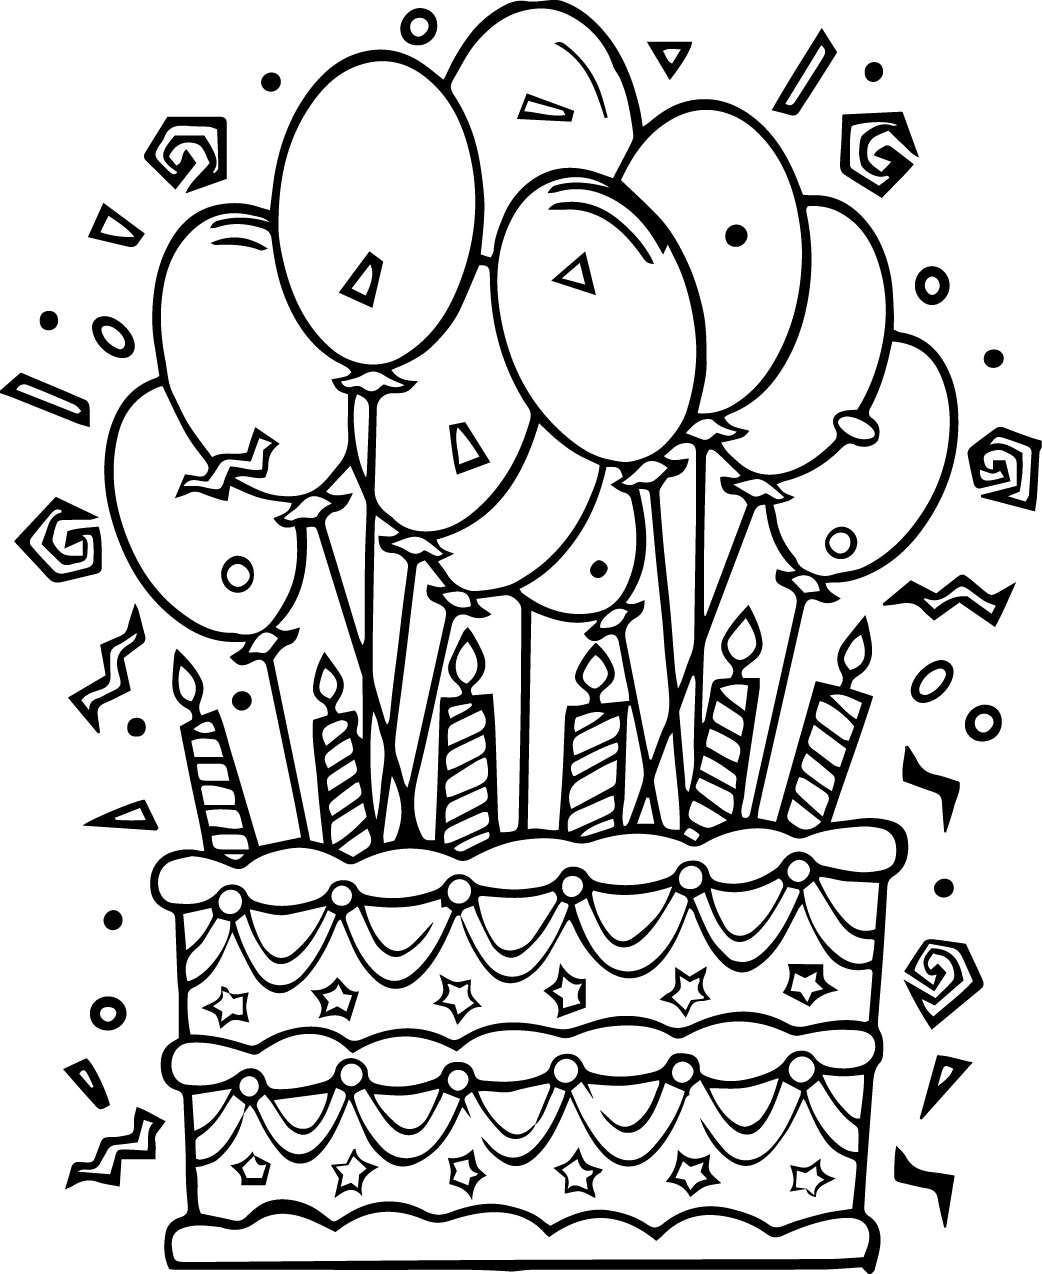 Wonderful Looking Birthday Cake Coloring Pages Happy Book Activities - Free Printable Pictures Of Birthday Cakes